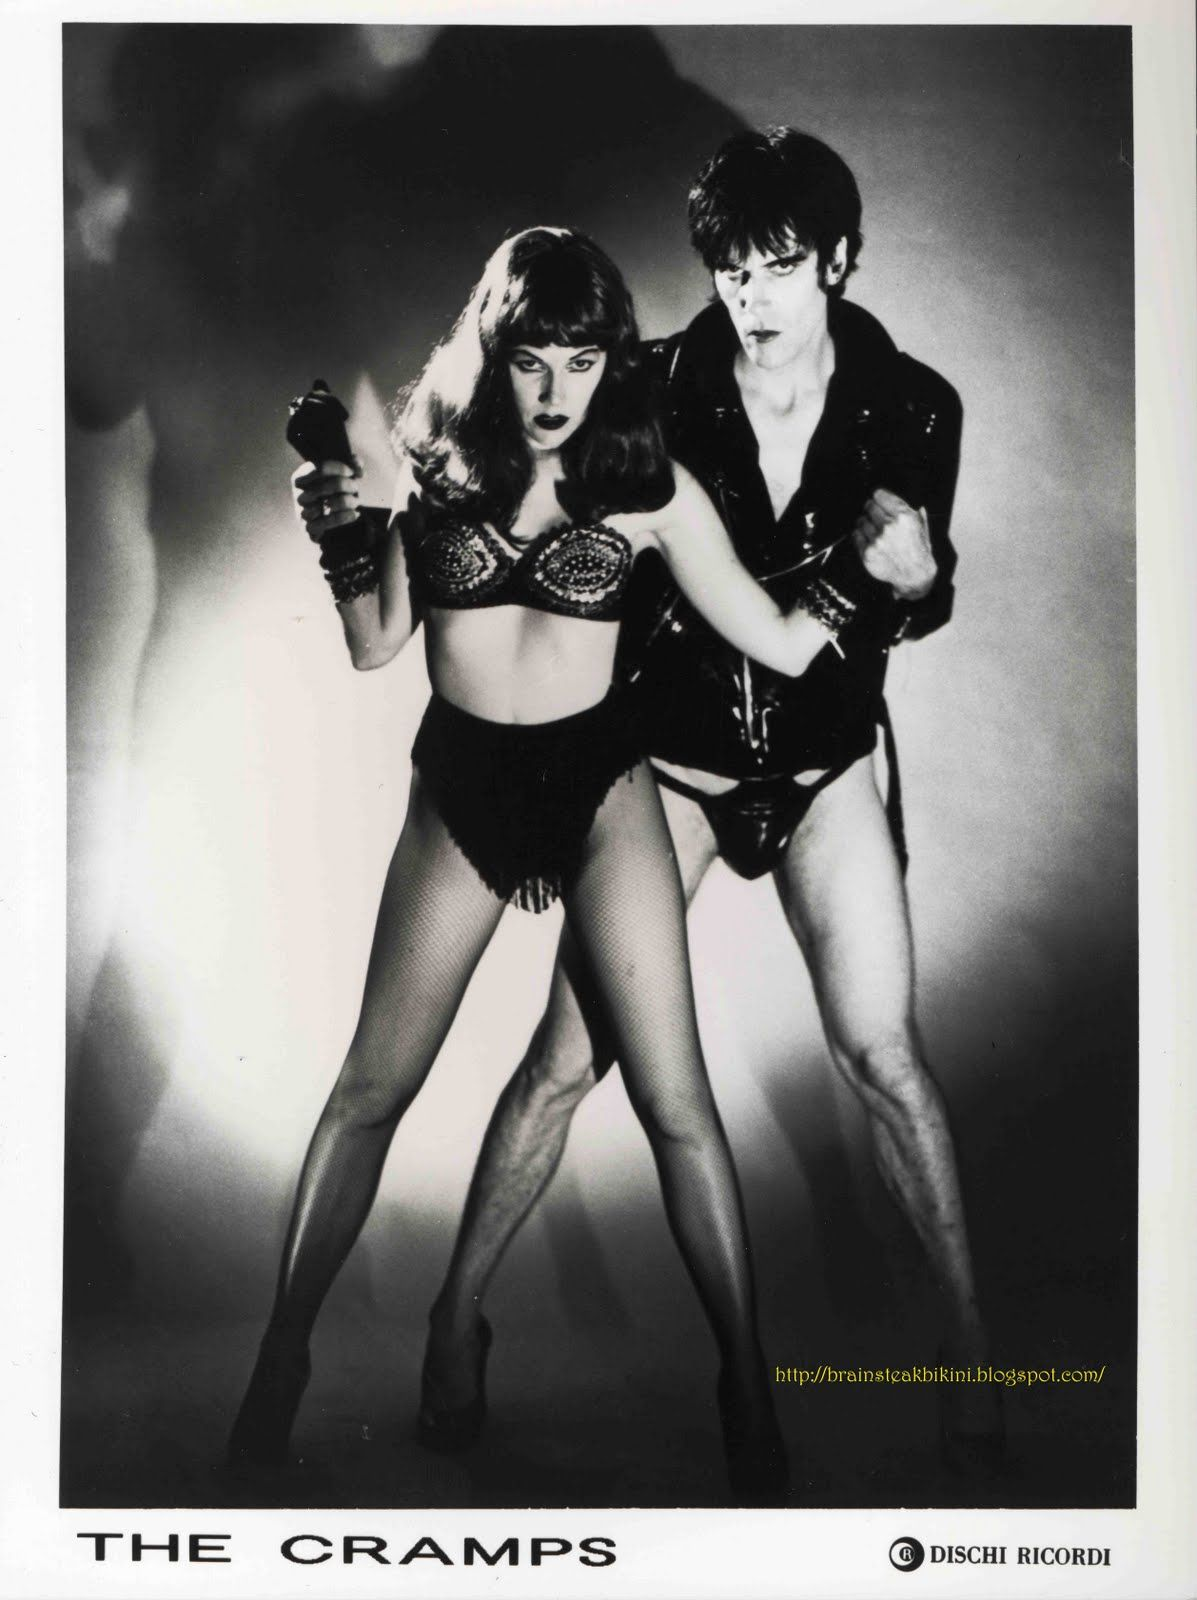 Lux interior  Poison Ivi  people  The cramps Goth